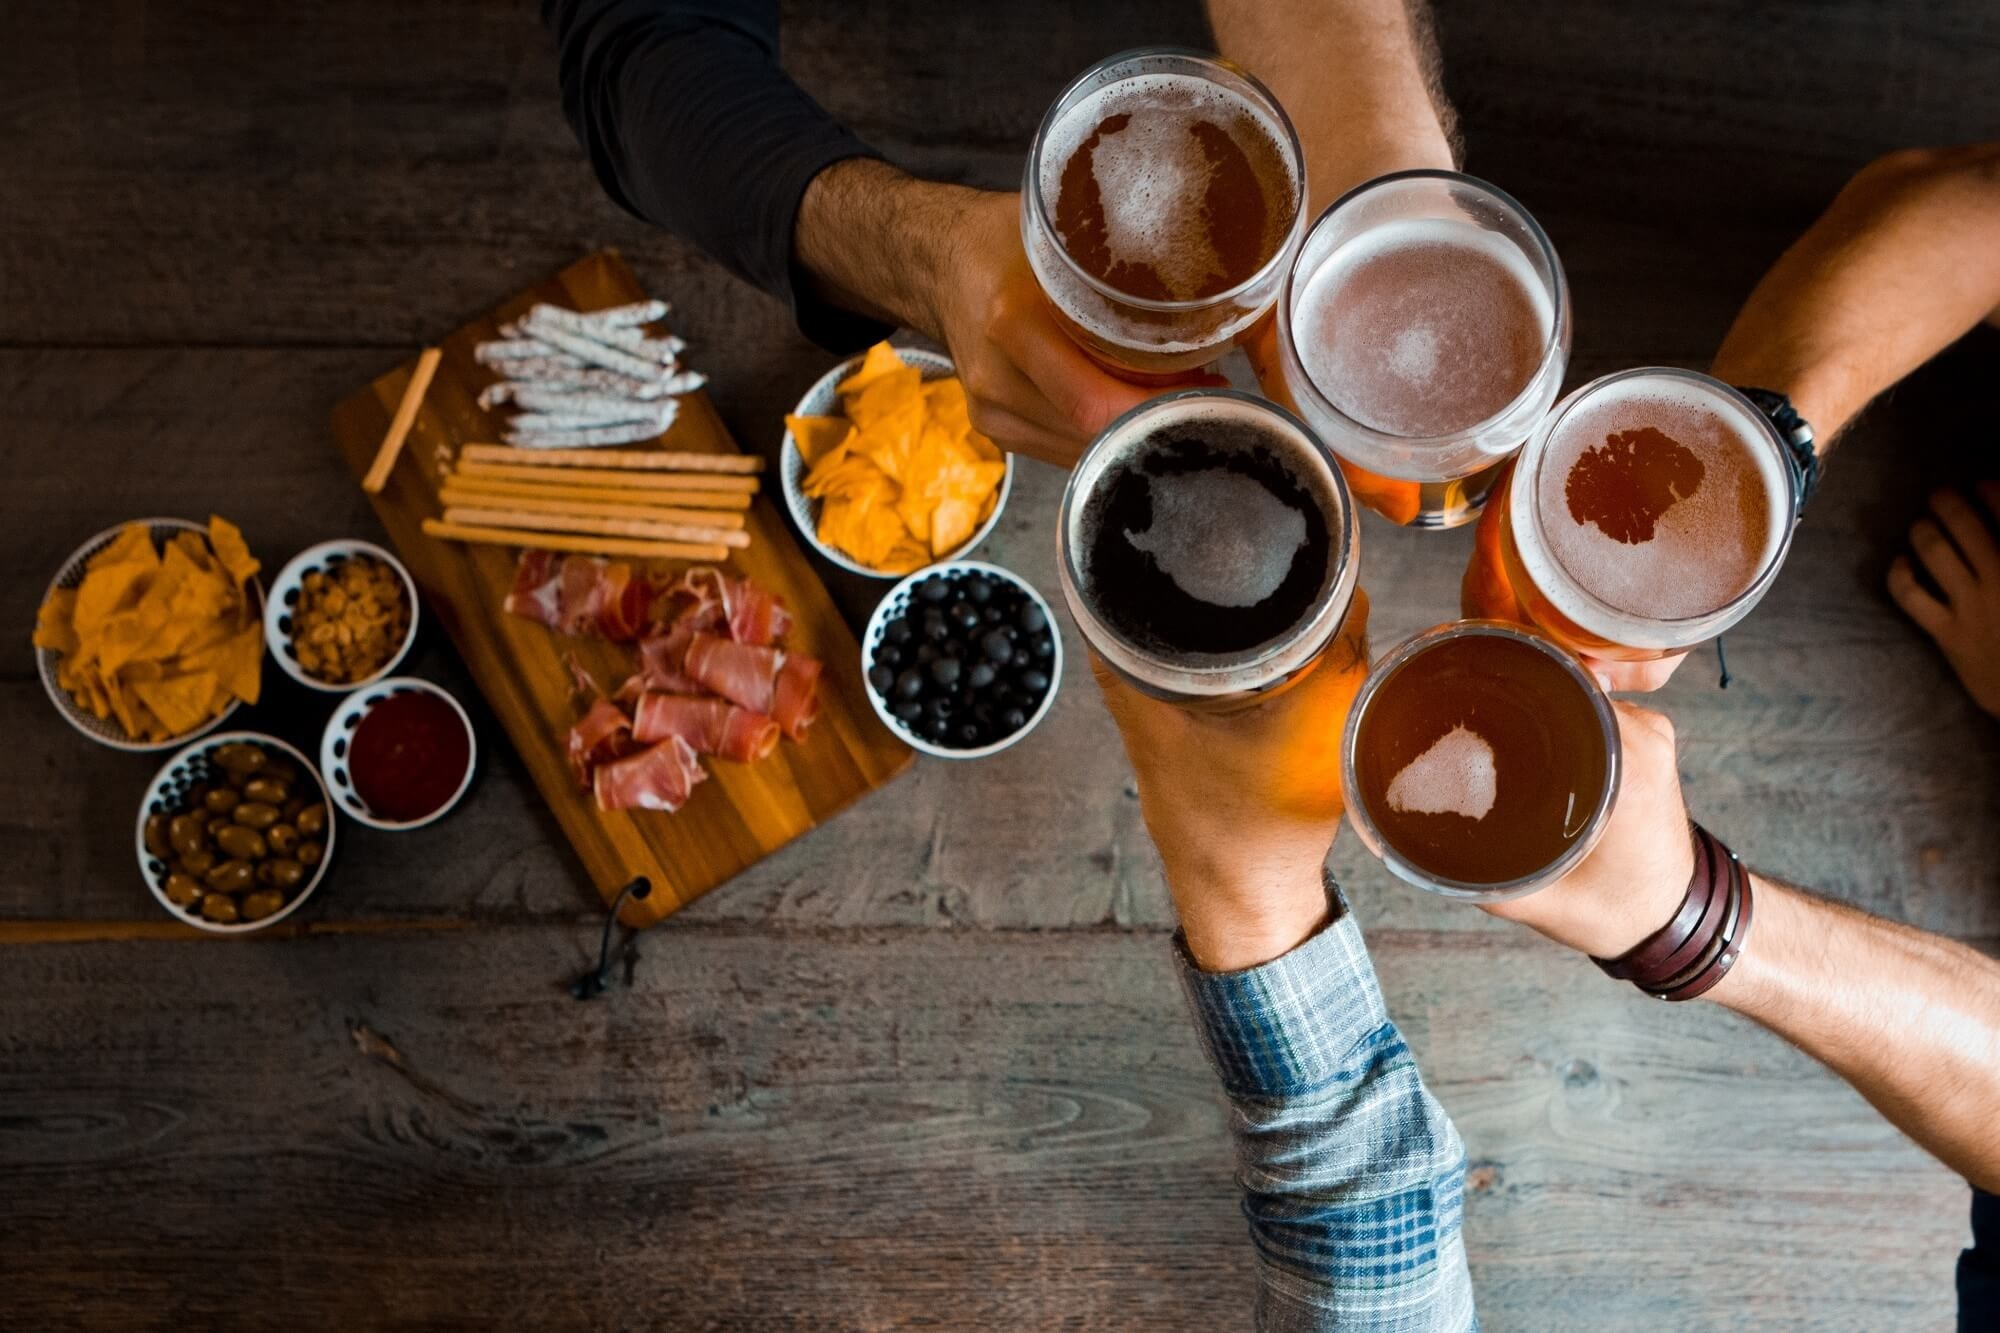 Drunkorexia is a term referring to limiting food intake prior to alcohol consumption.